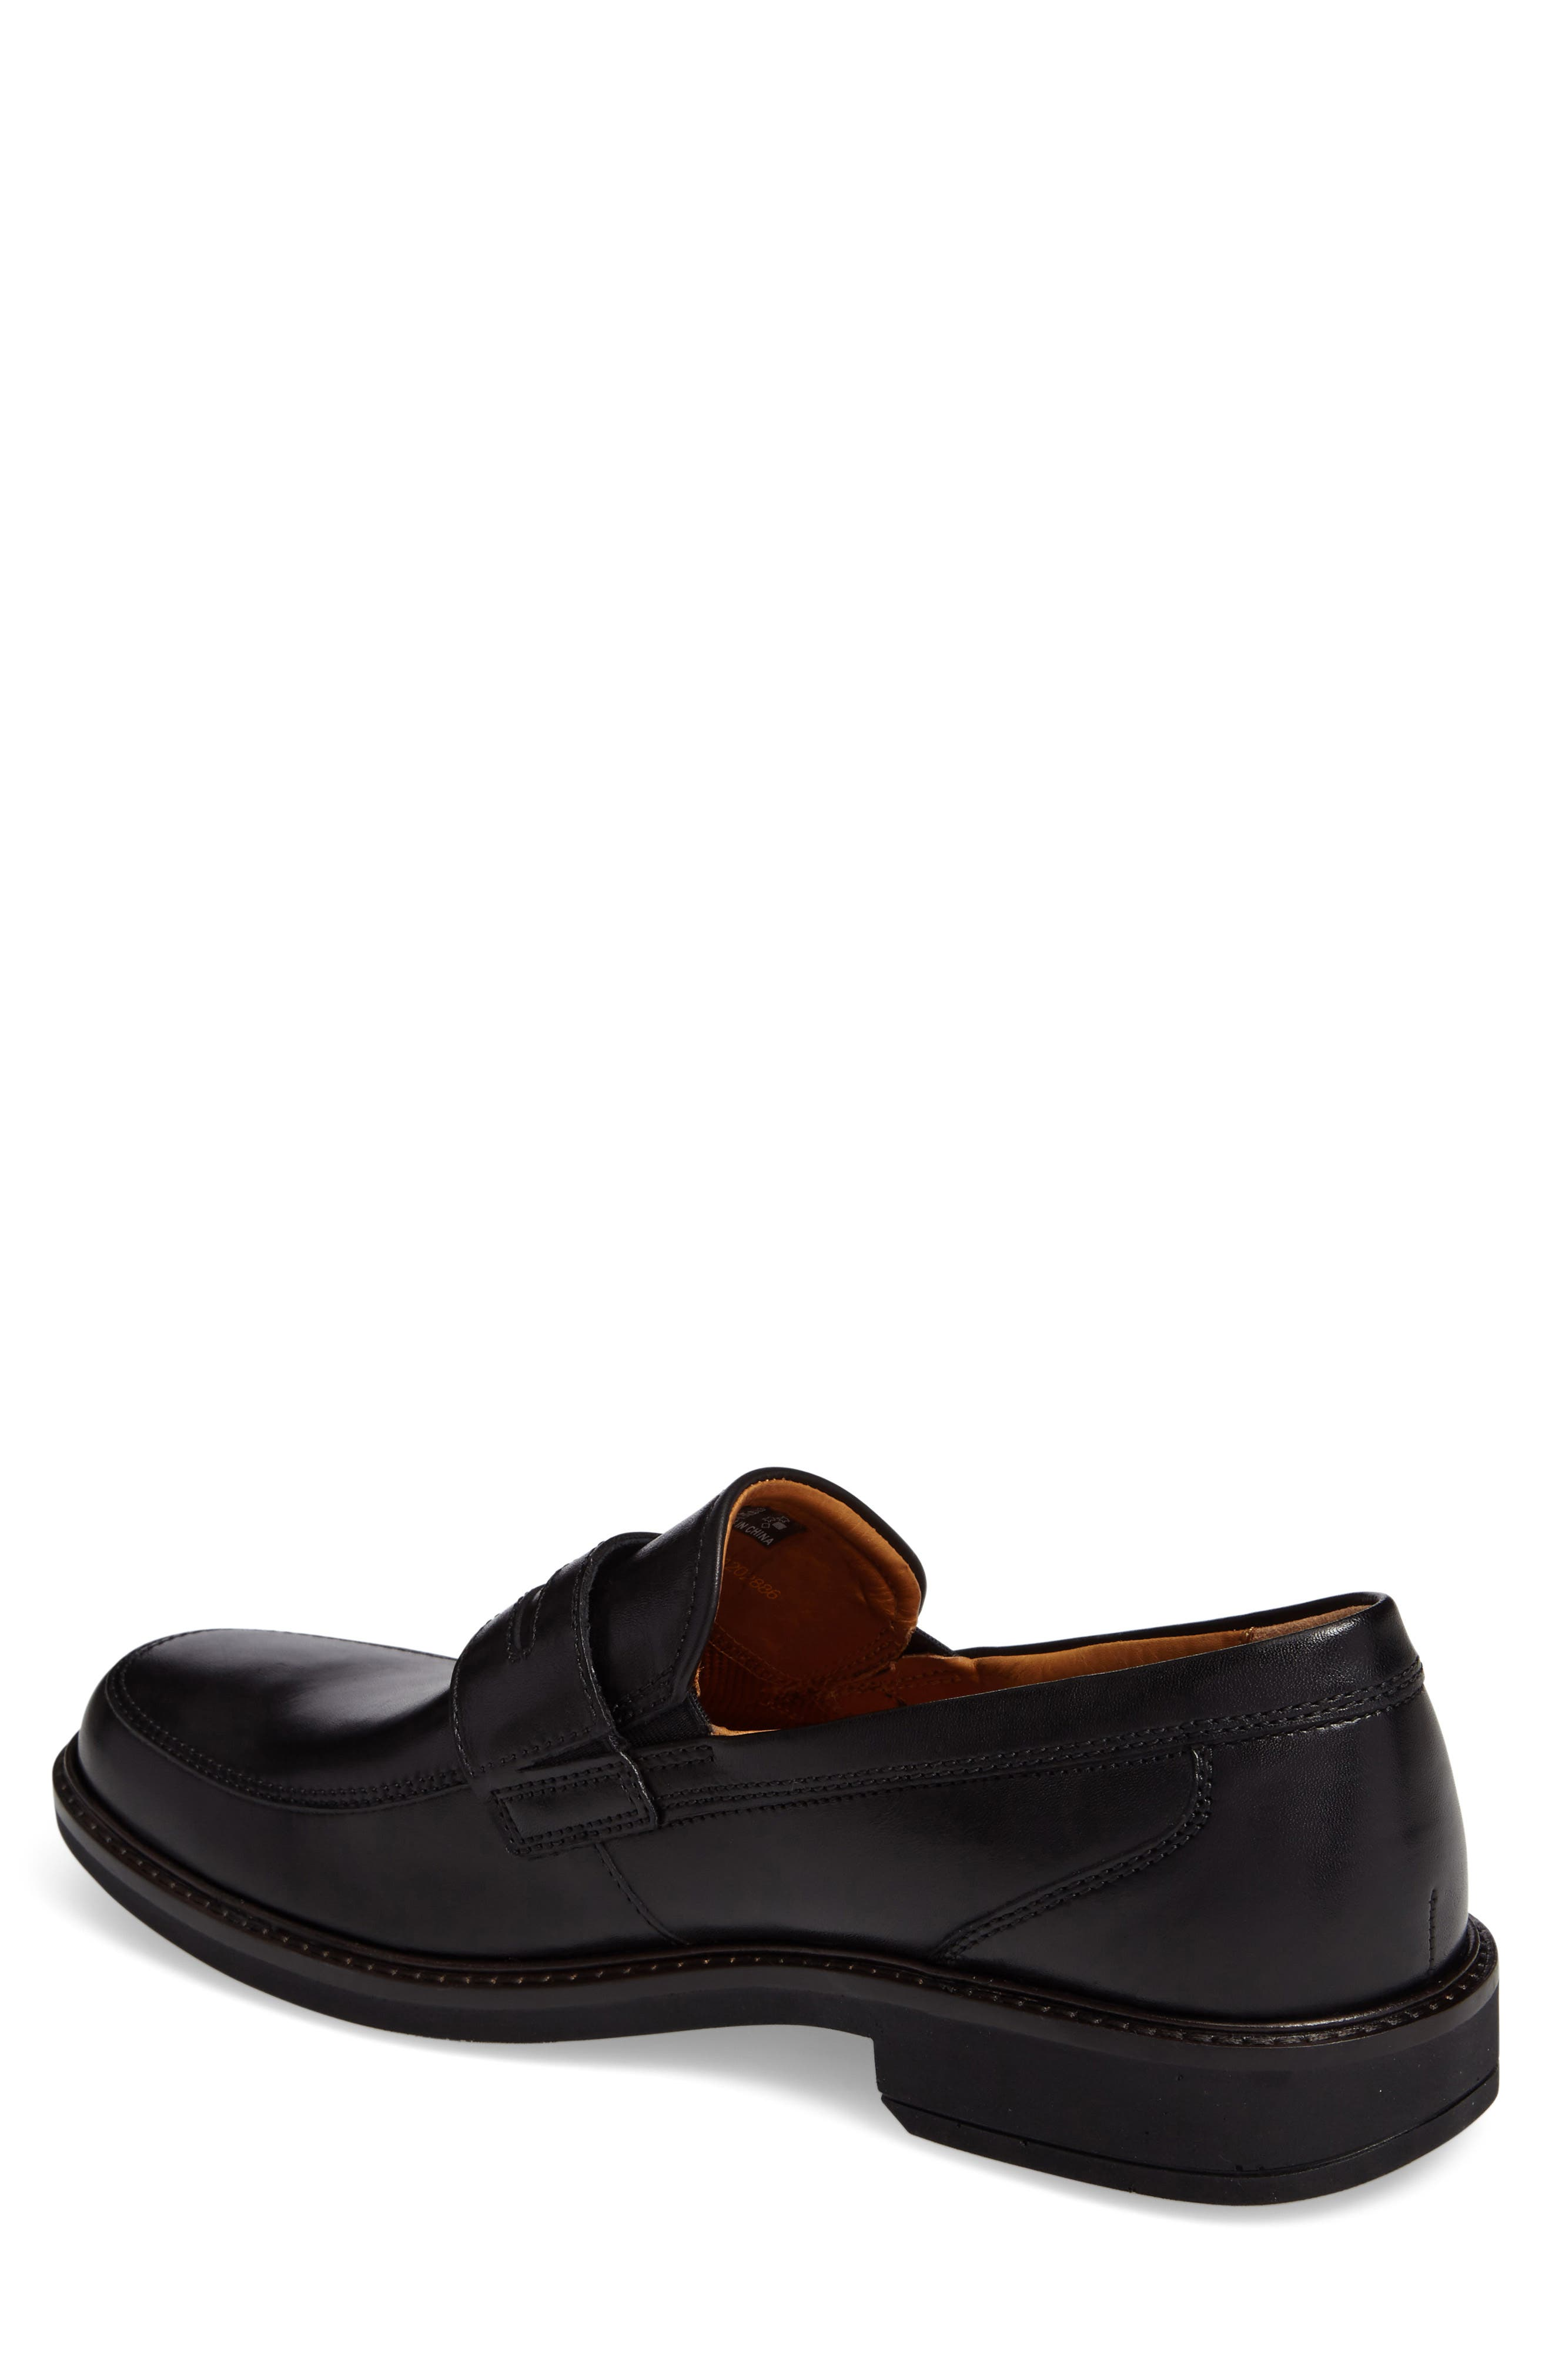 Holton Penny Loafer,                             Alternate thumbnail 2, color,                             001